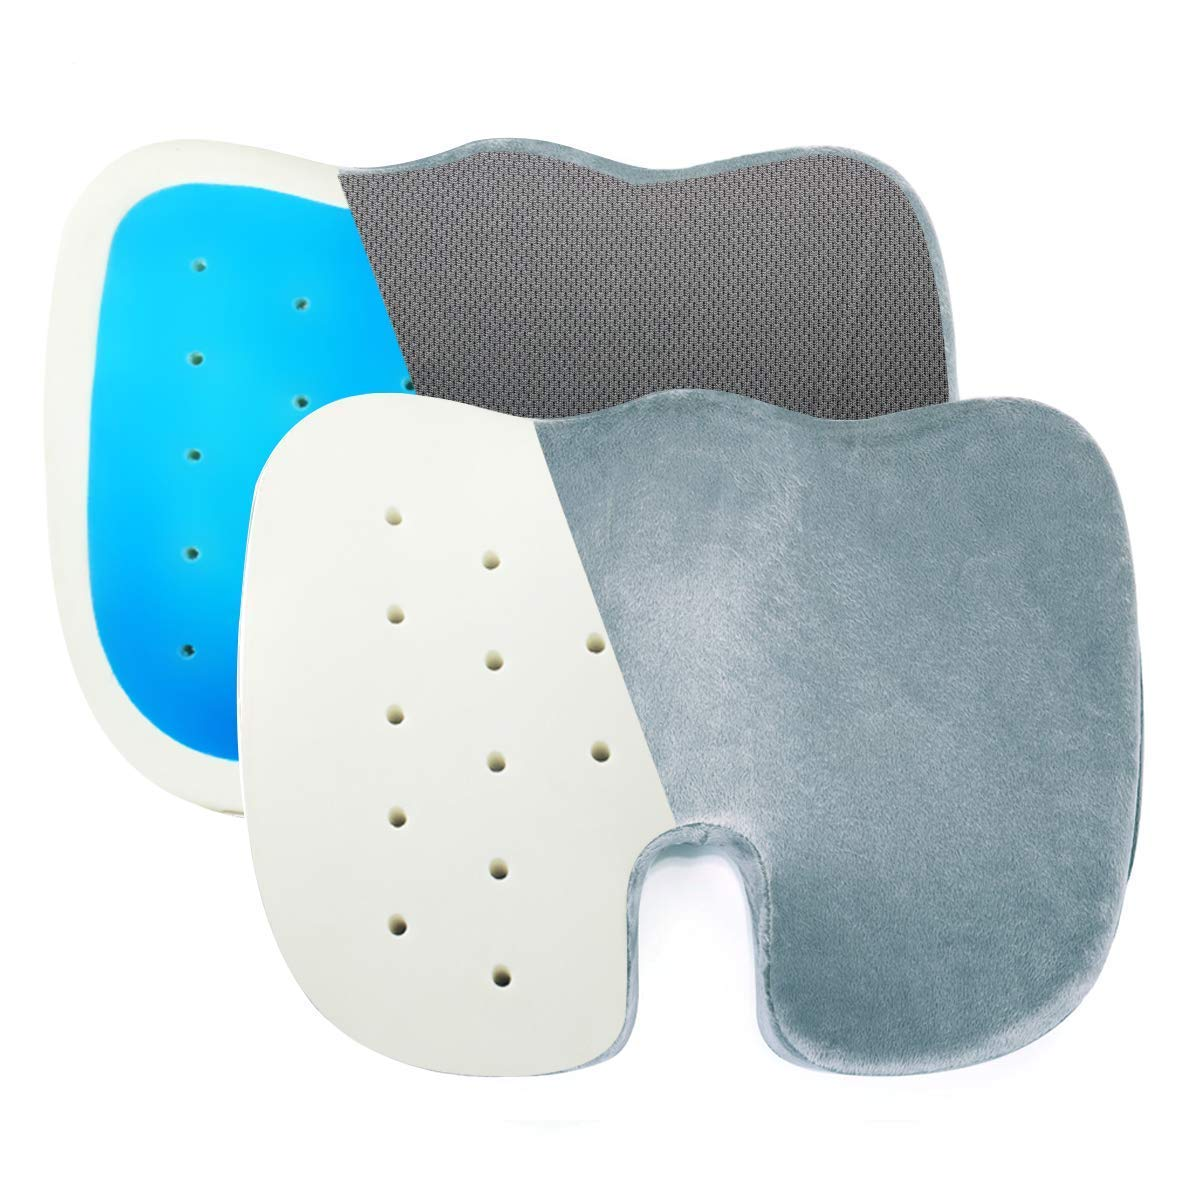 OKELA Coccyx Orthopedic Memory Foam Seat Cushion, Comfort Memory Foam Chair Cushion with Venting Holes & Gel Enhanced for Summer(on The Back), Tailbone Pillow for Sciatica, Back, and Tailbone Pain